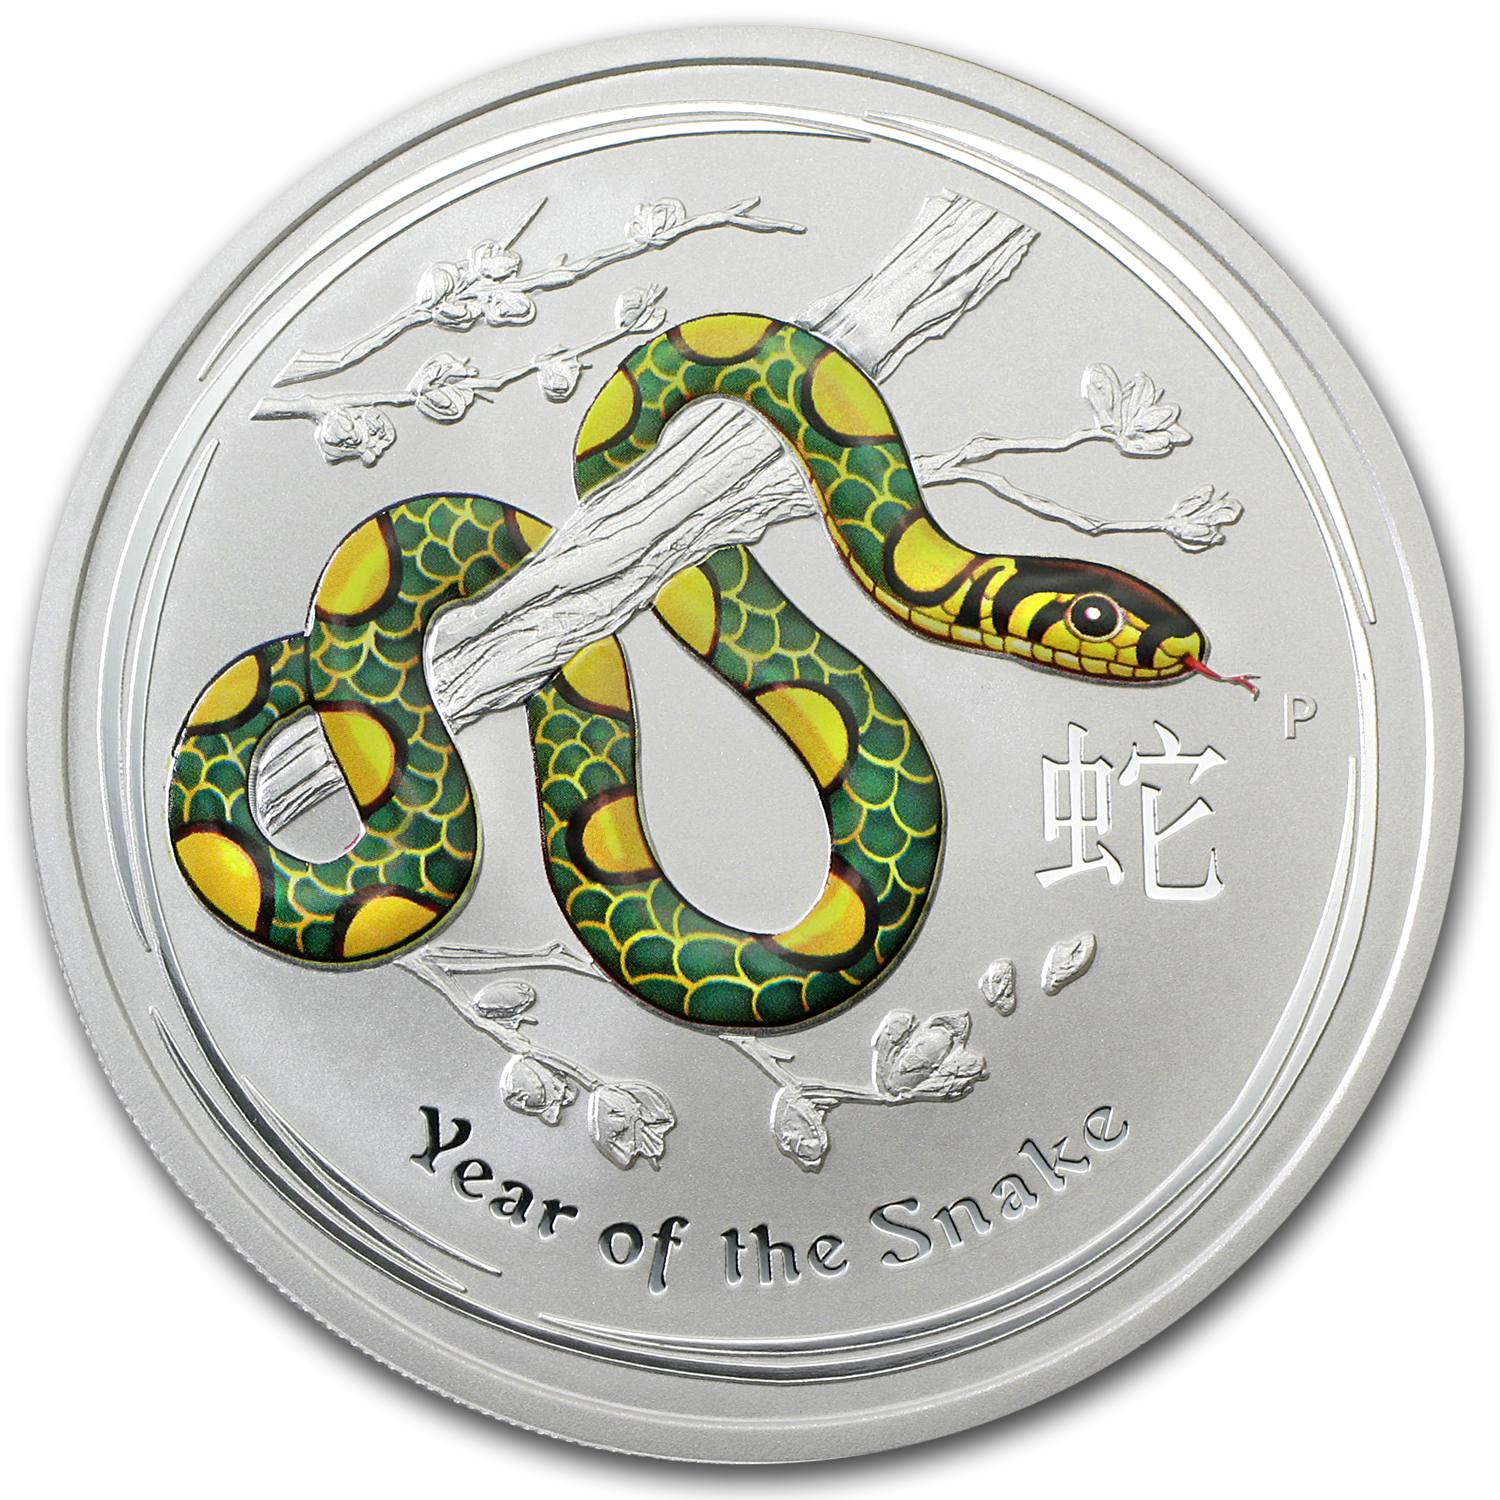 2013 Australia 5 oz Silver Year of the Snake BU (Colorized, Box)